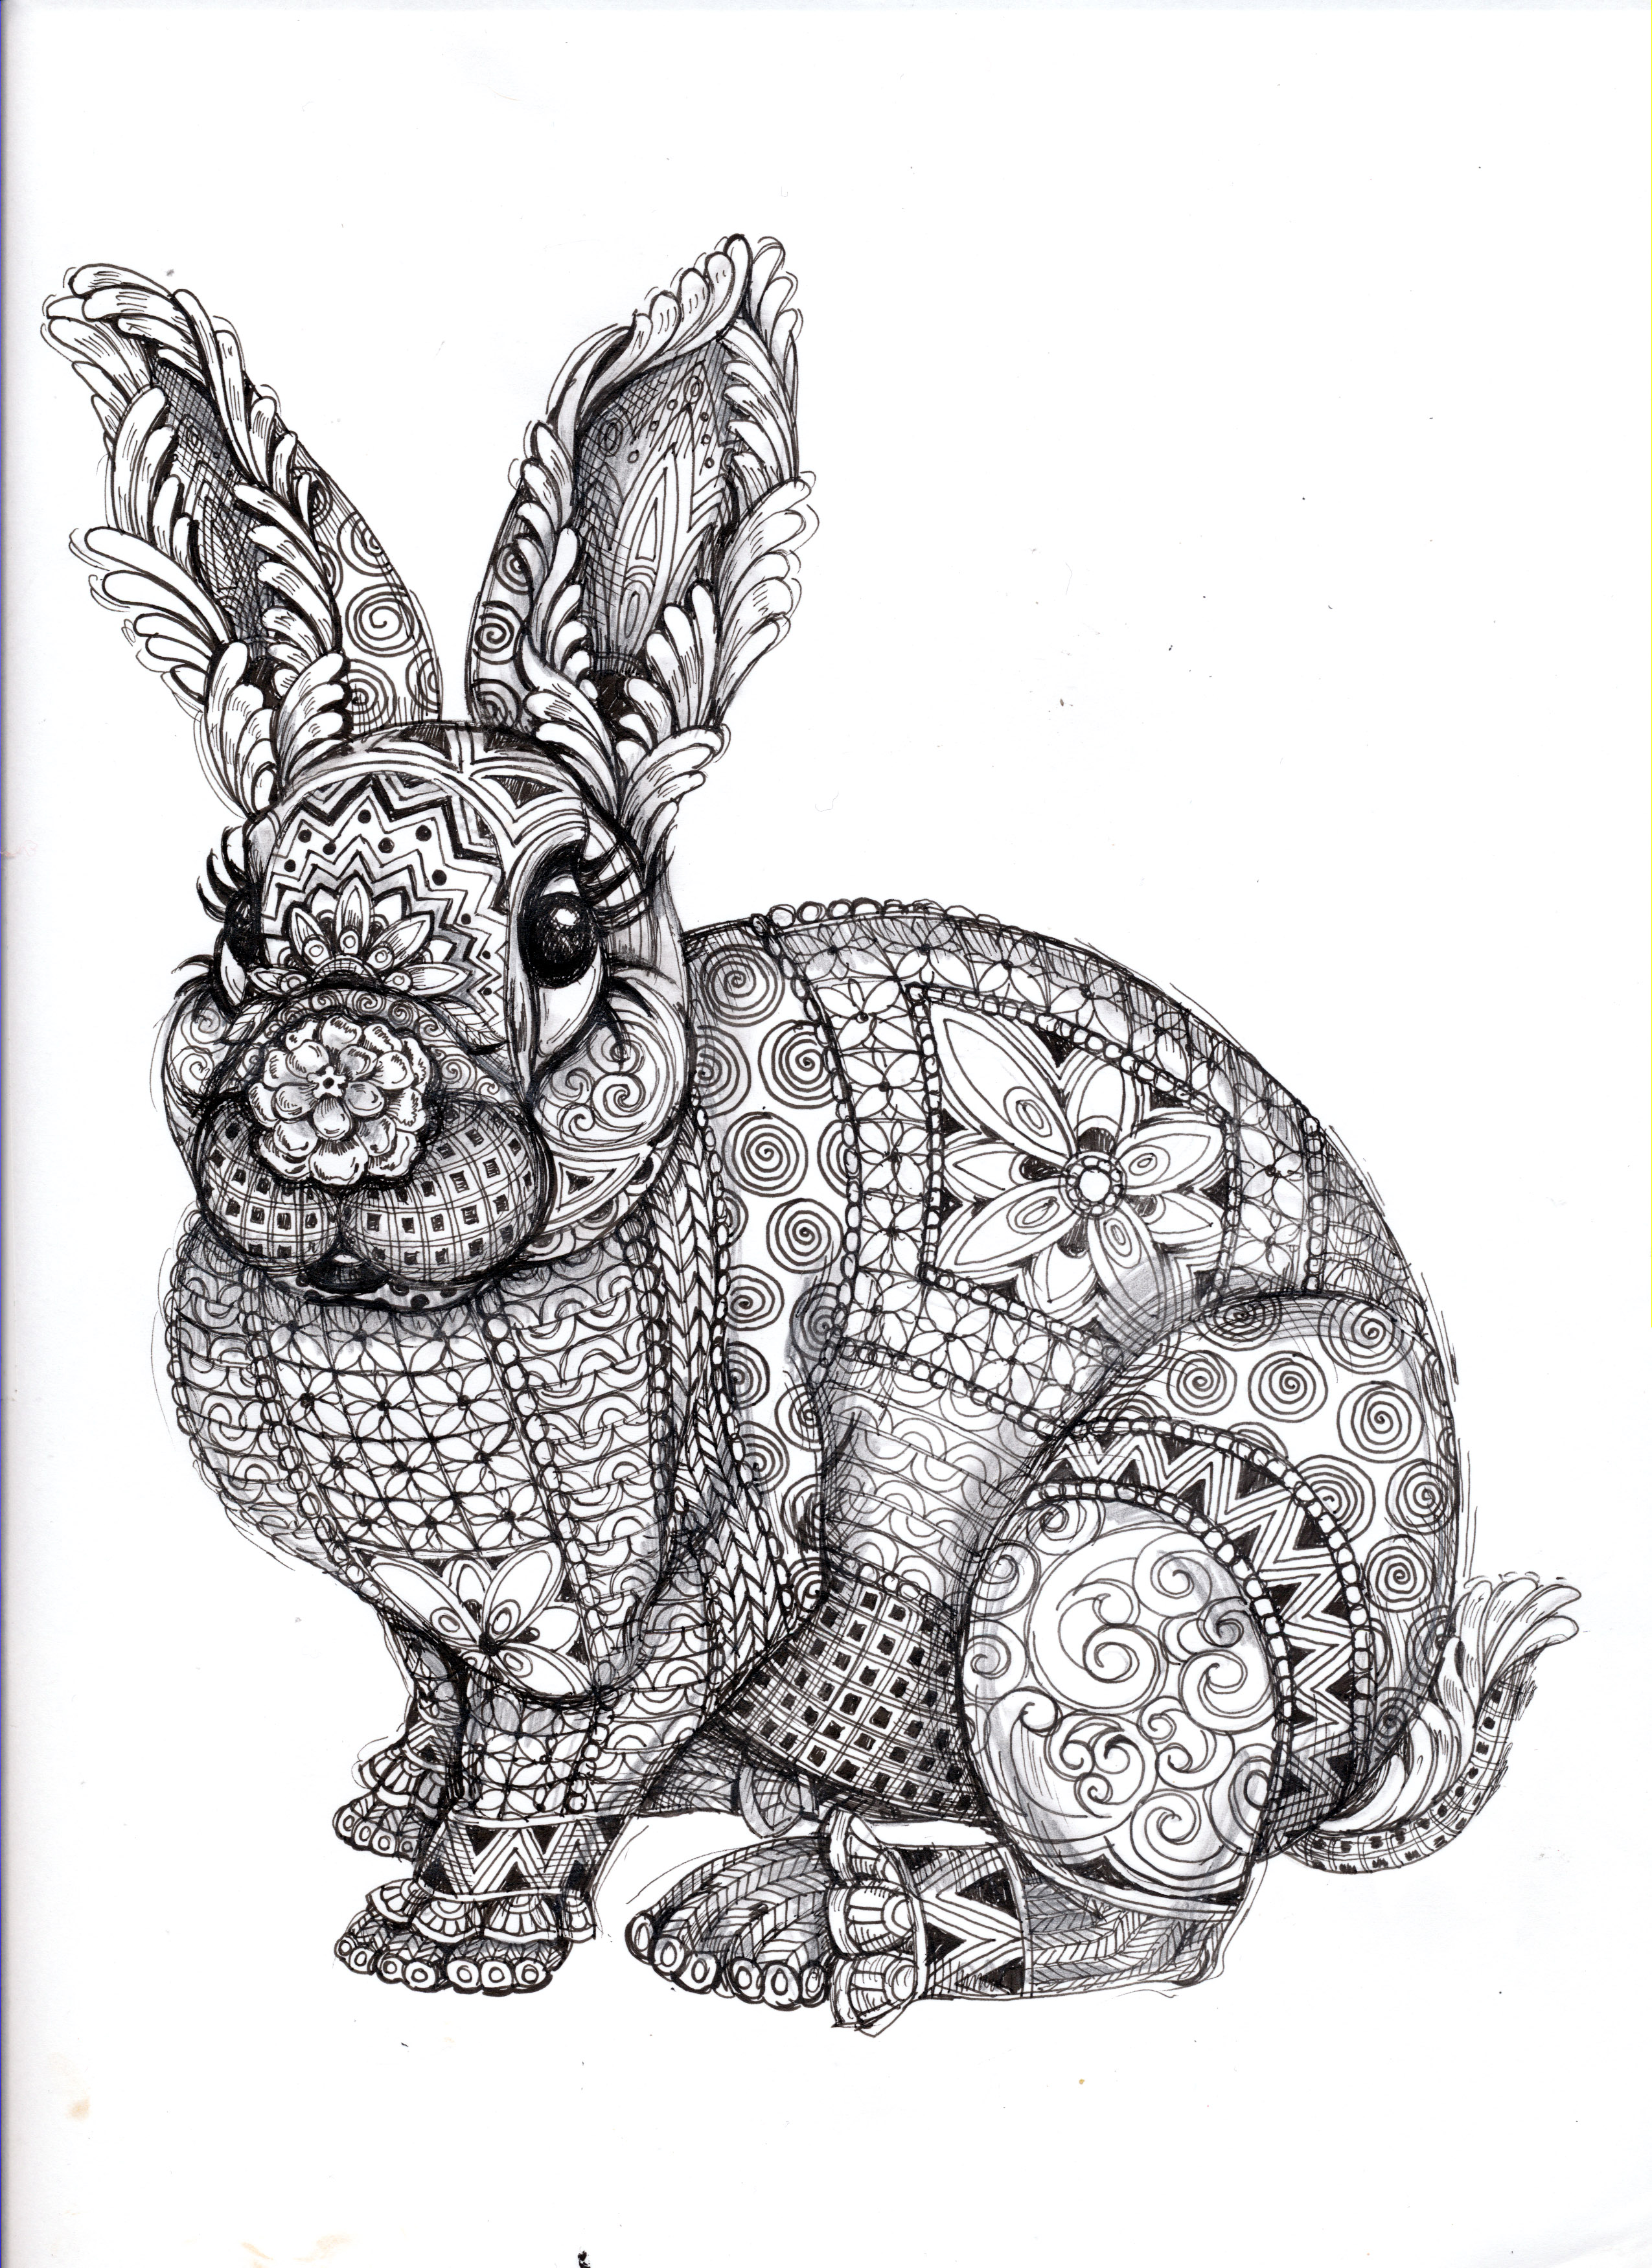 Drawn rabbit abstract Pages! Find more and on